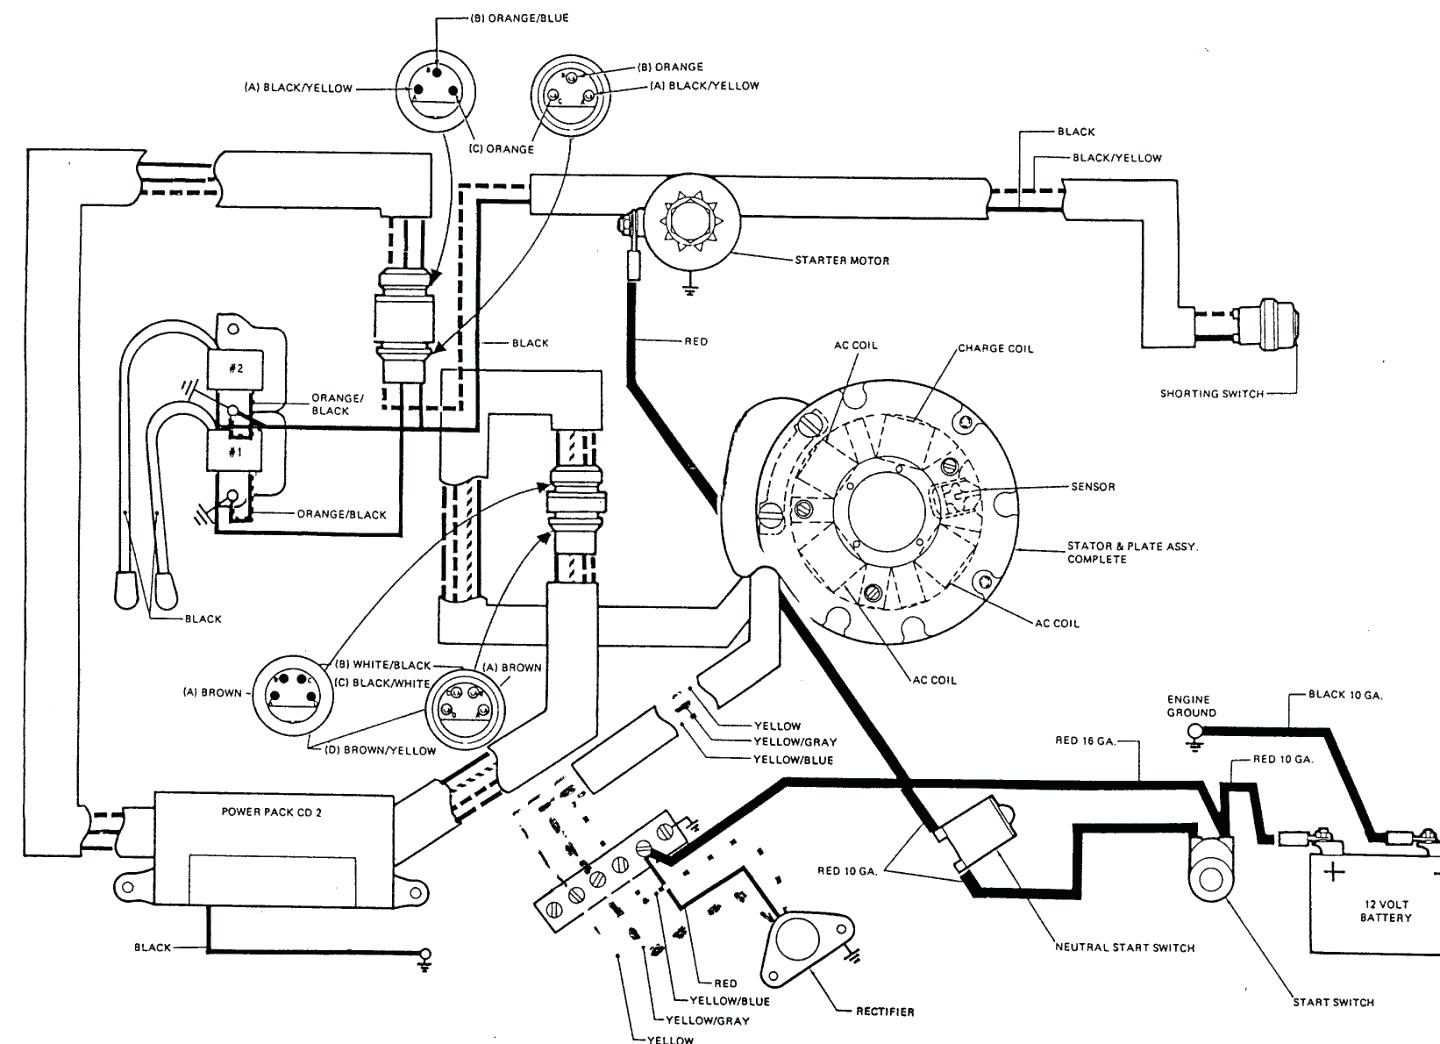 hight resolution of 1440x1044 25 hp kohler engine wiring diagram with notes ignition electrical